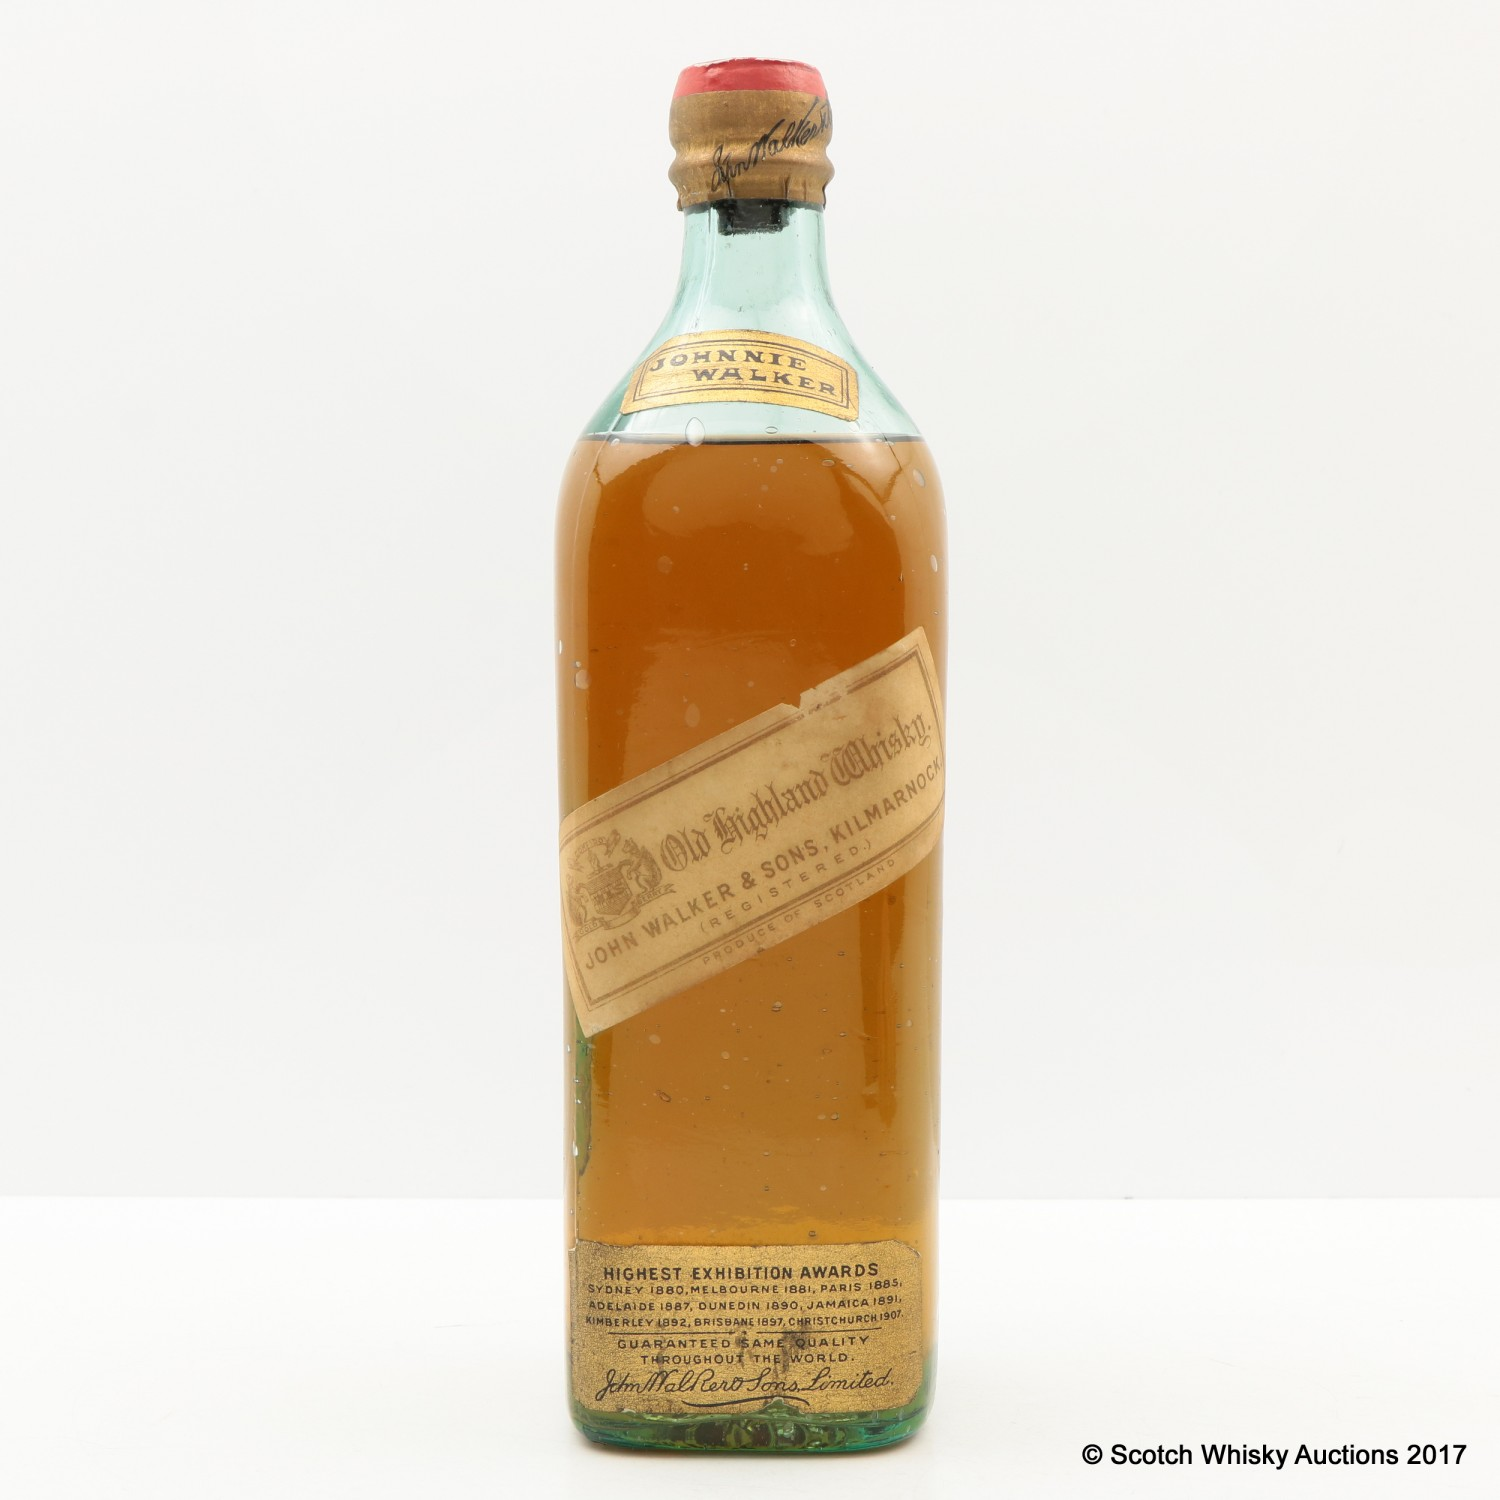 Scotch Whisky Auctions | The 76th Auction